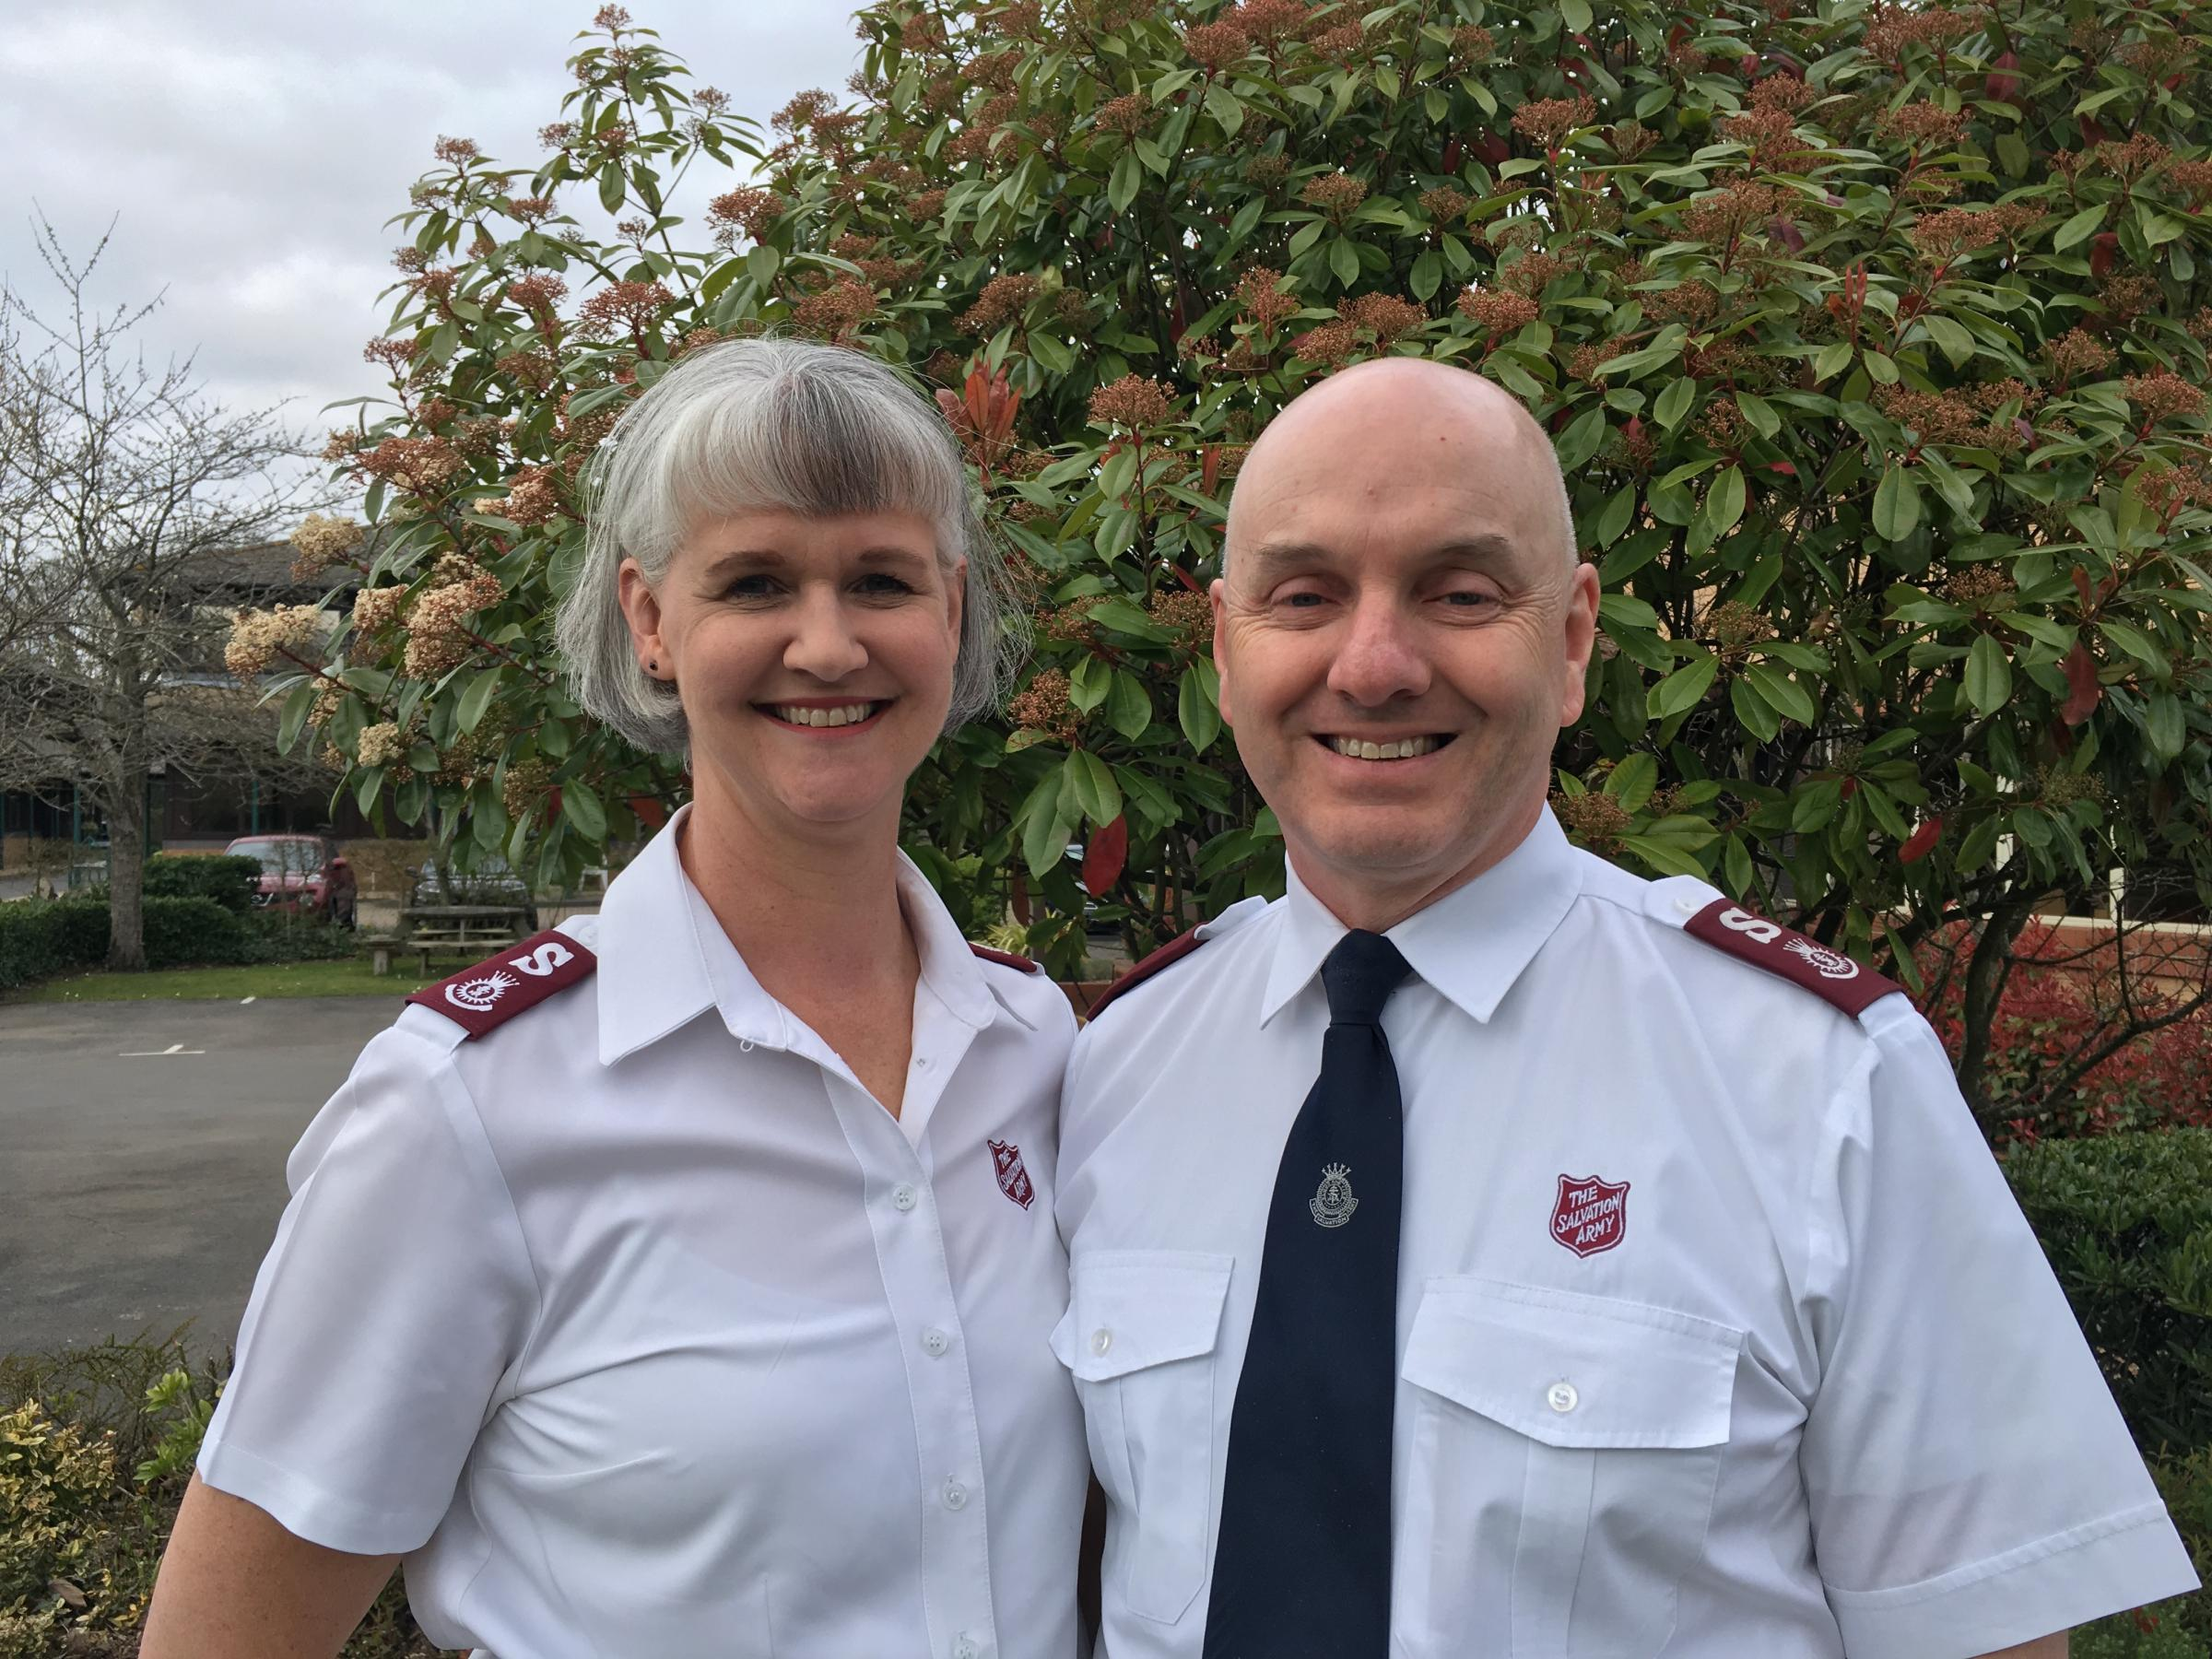 Major Gregory and Major Priya Morgan - The Salvation Army's new southern division heads